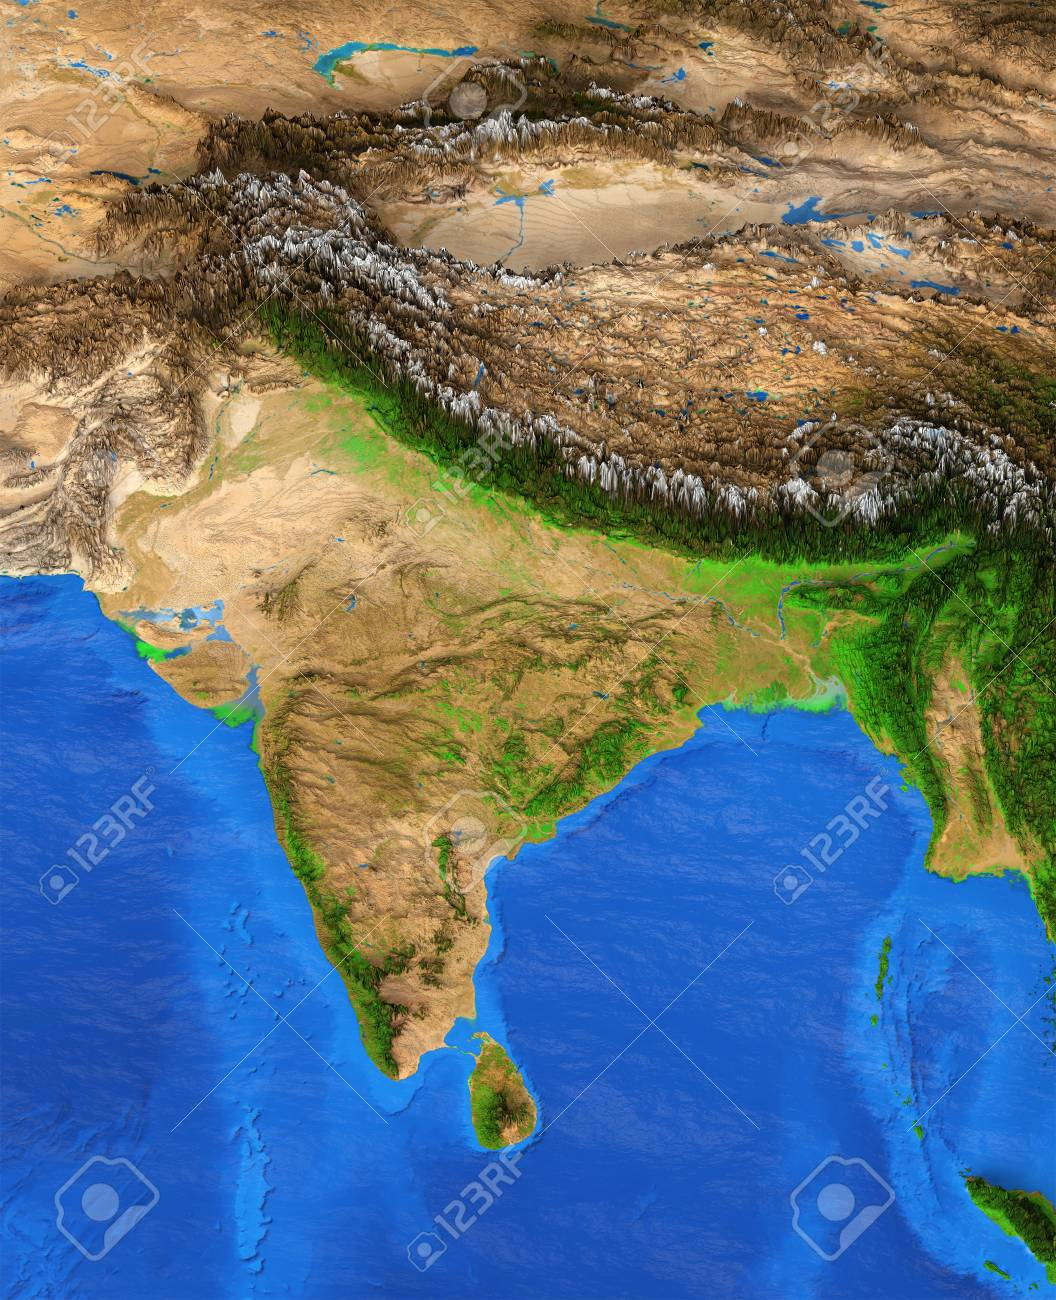 India Map Satellite View Map Of India. Detailed Satellite View Of The Earth And Its